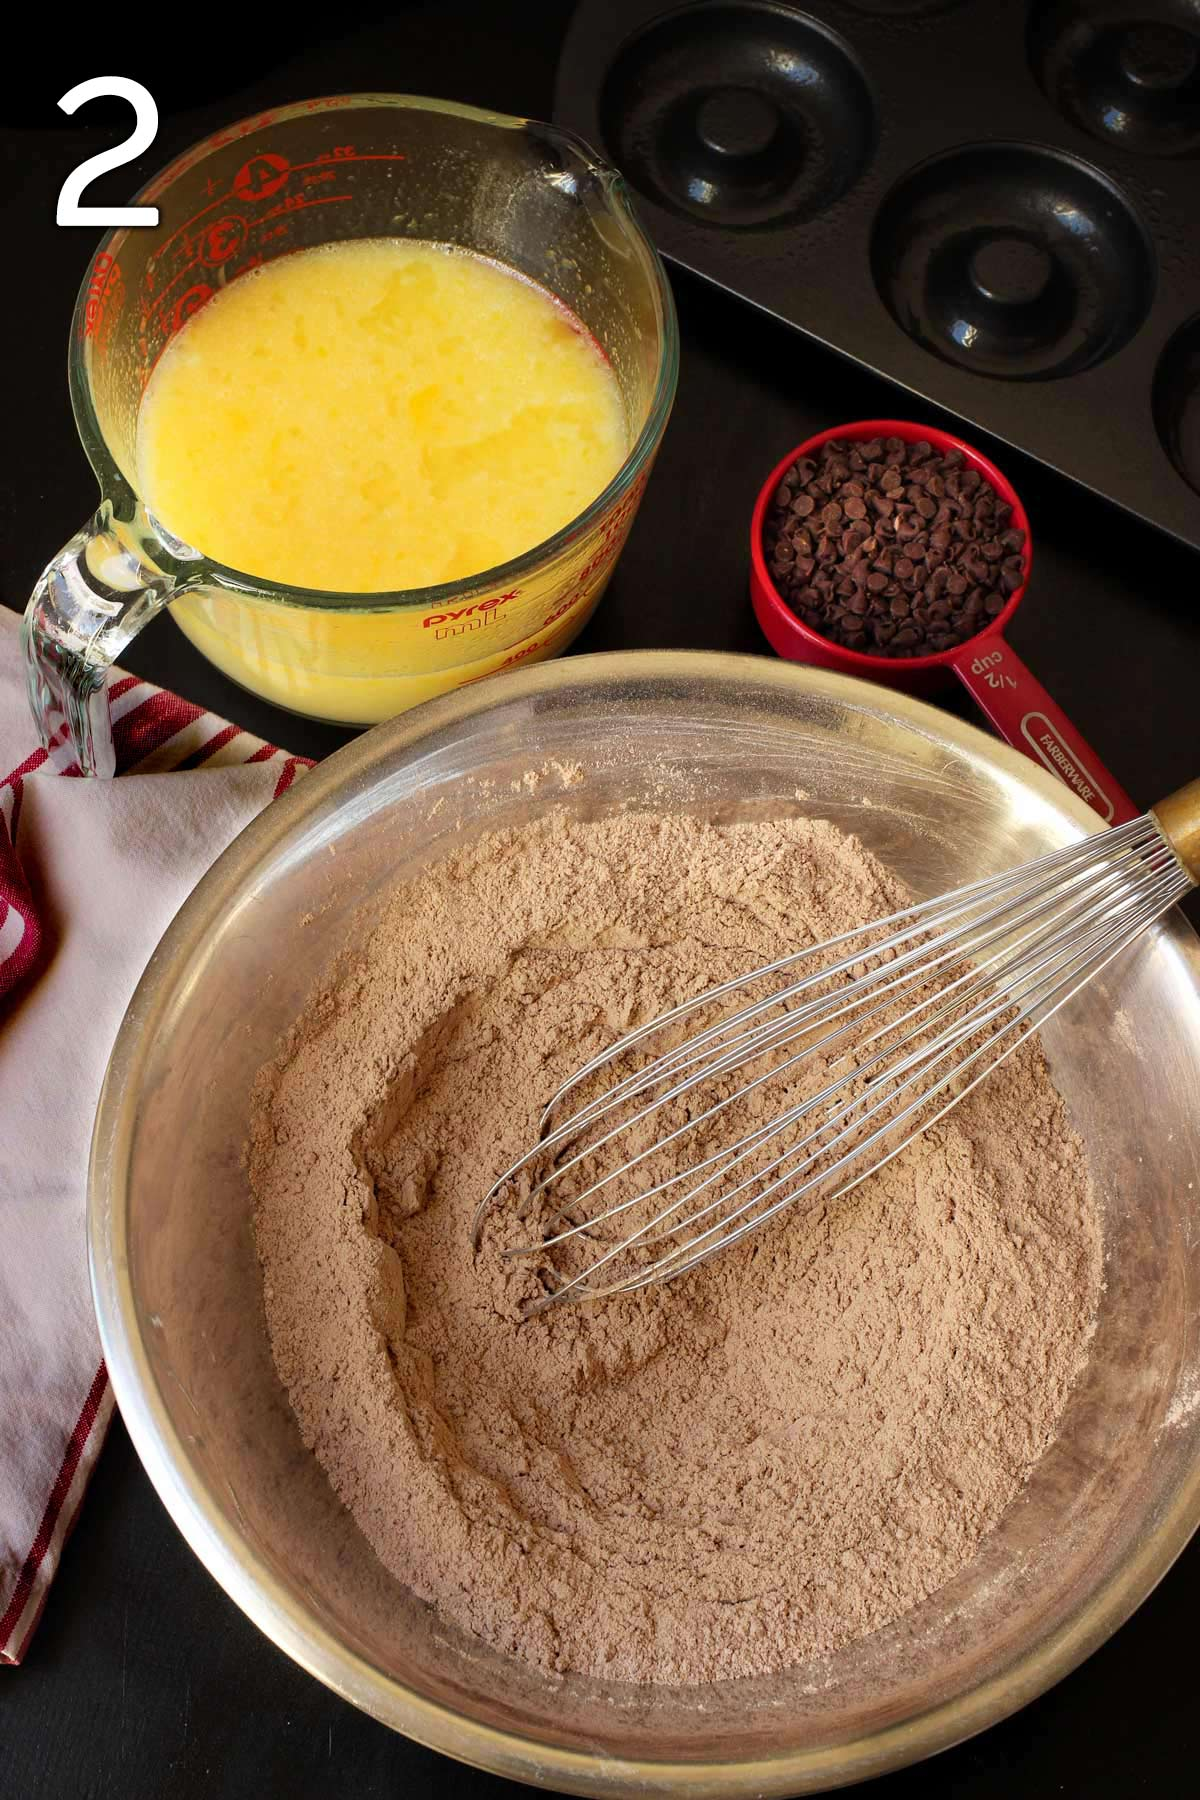 whisking together the dry ingredients in a large metal mixing bowl.